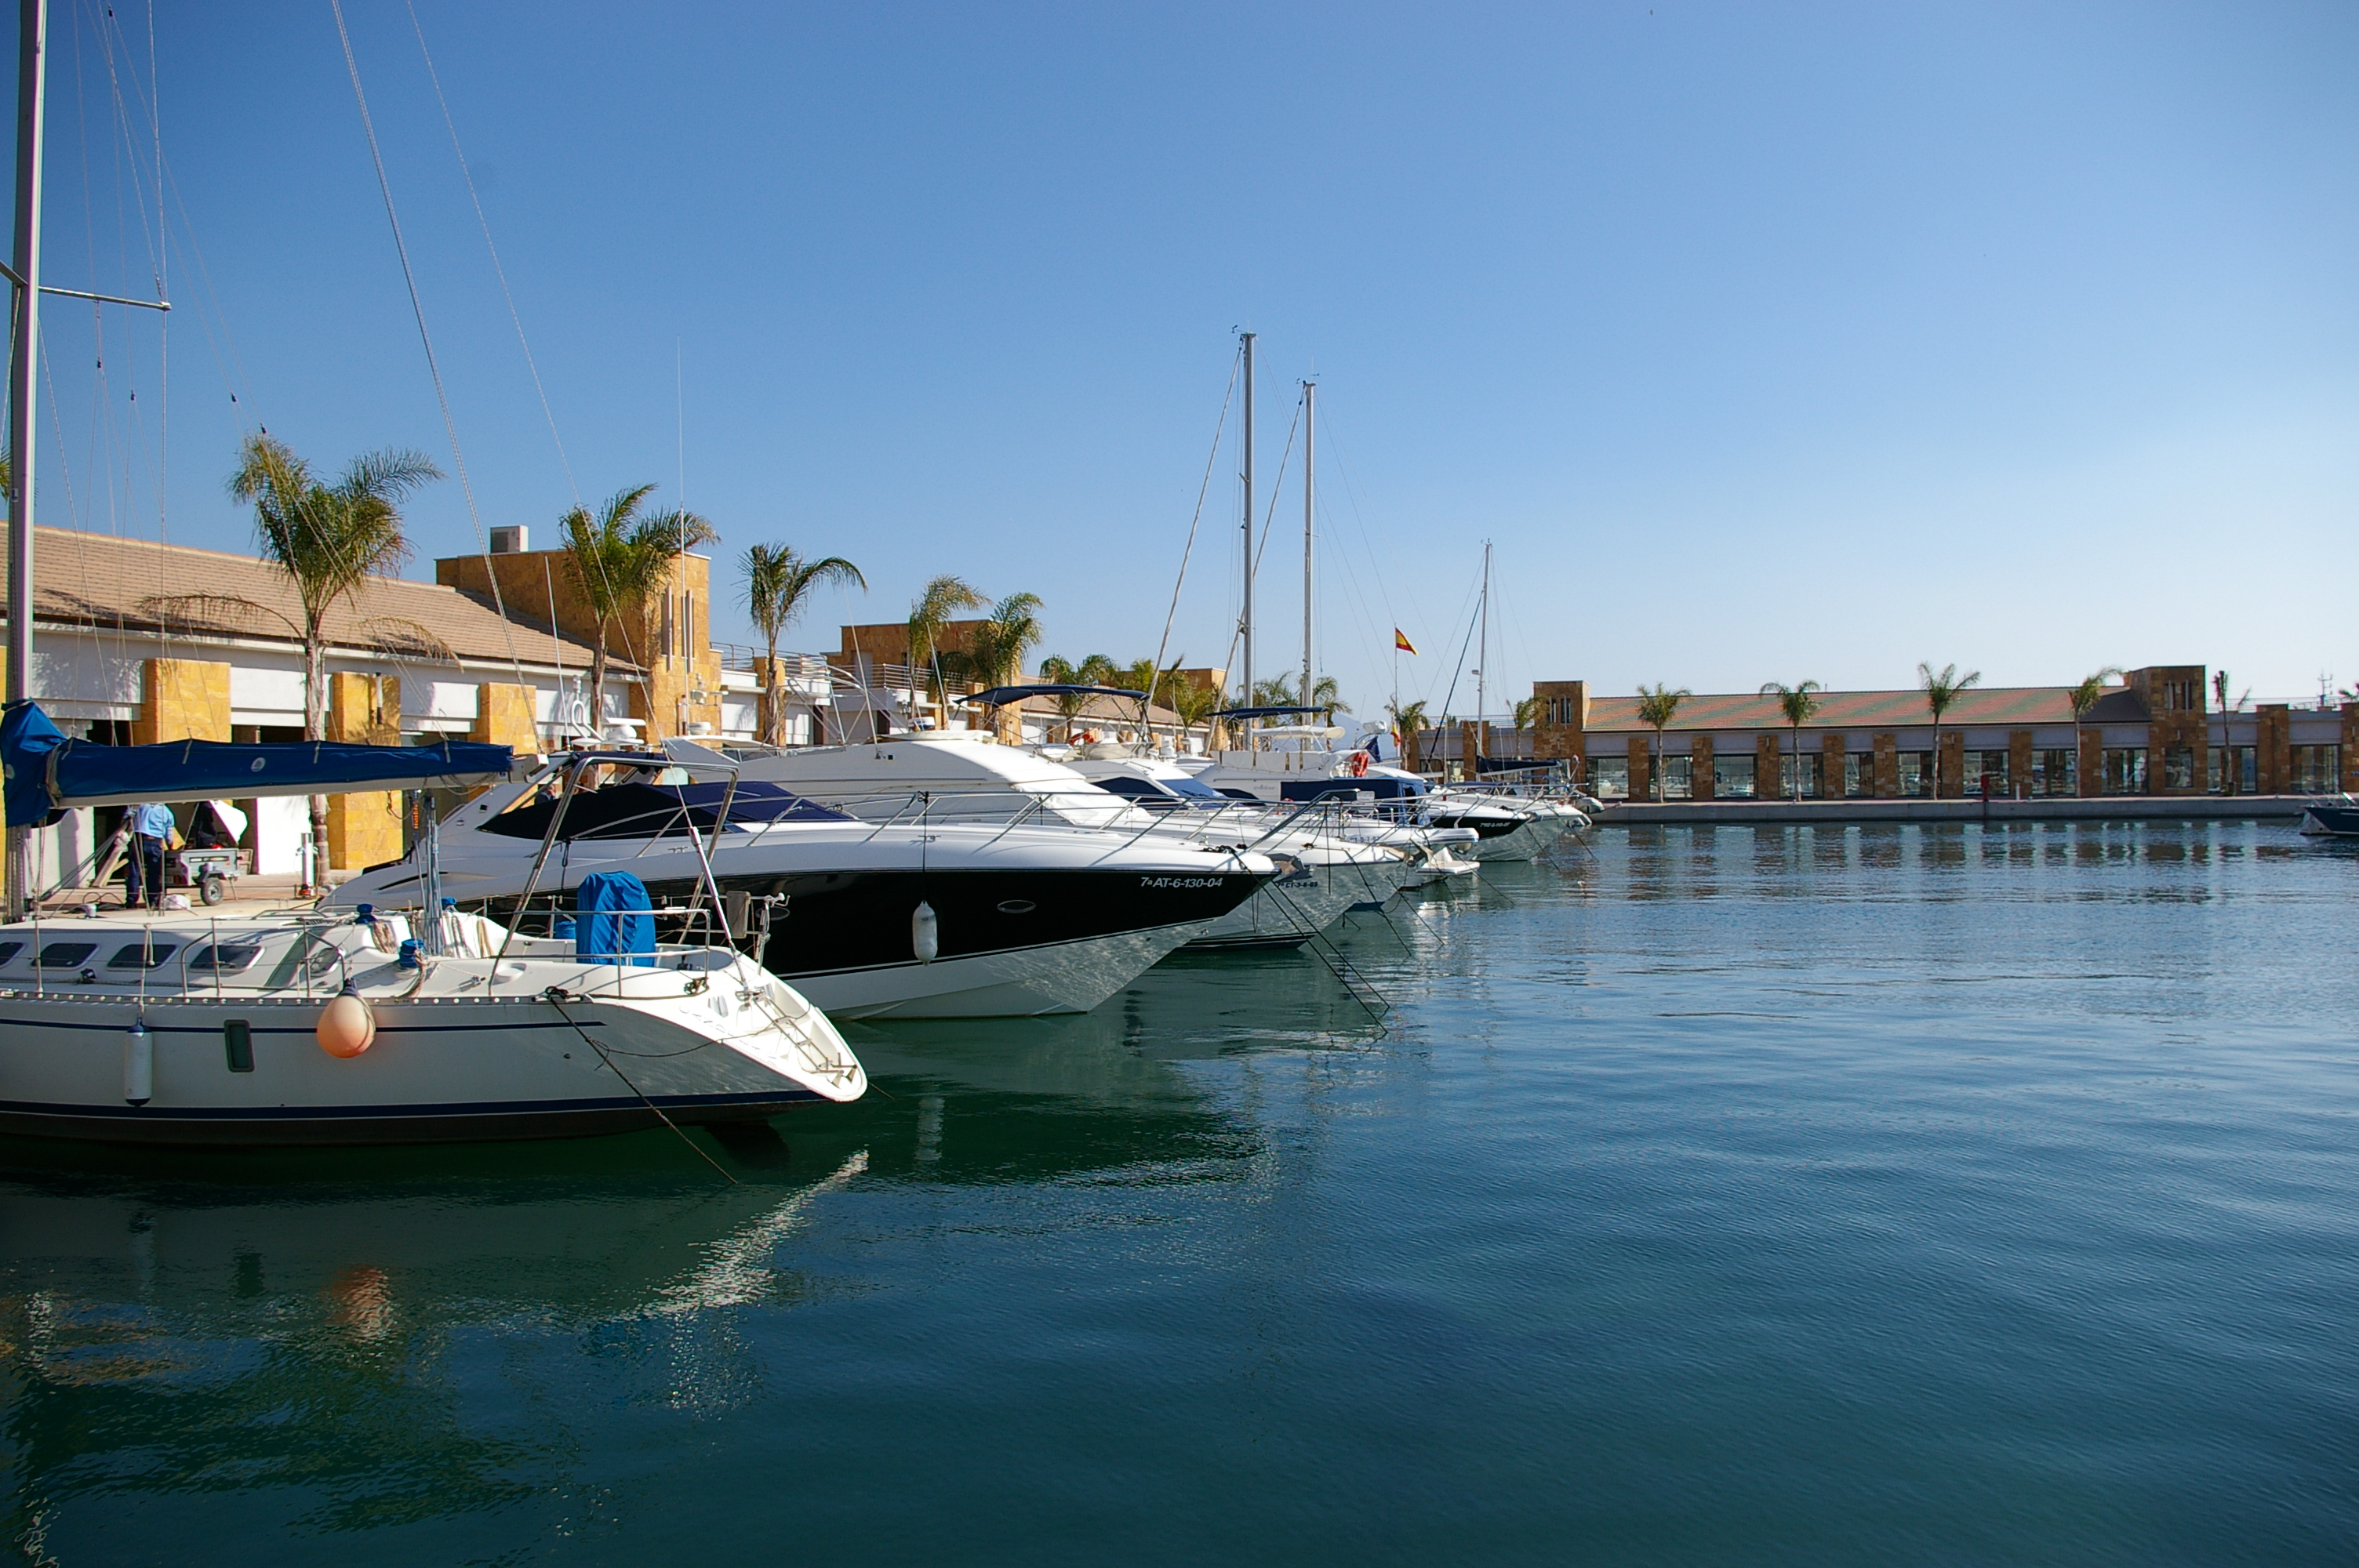 The Port of Mazarron